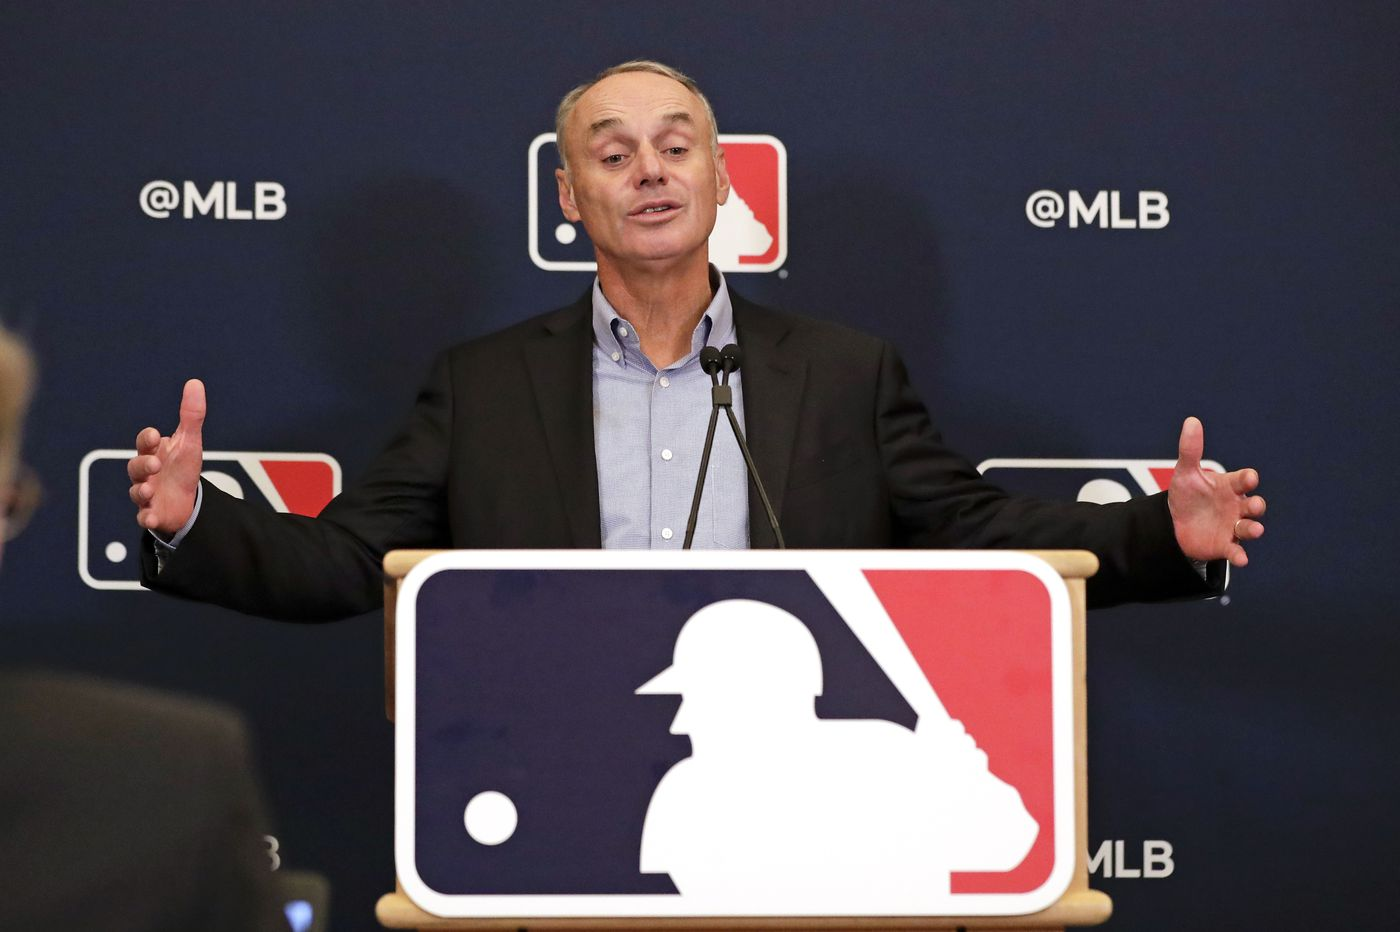 MLB owners and players' union set to discuss initial proposal to salvage 2020 season